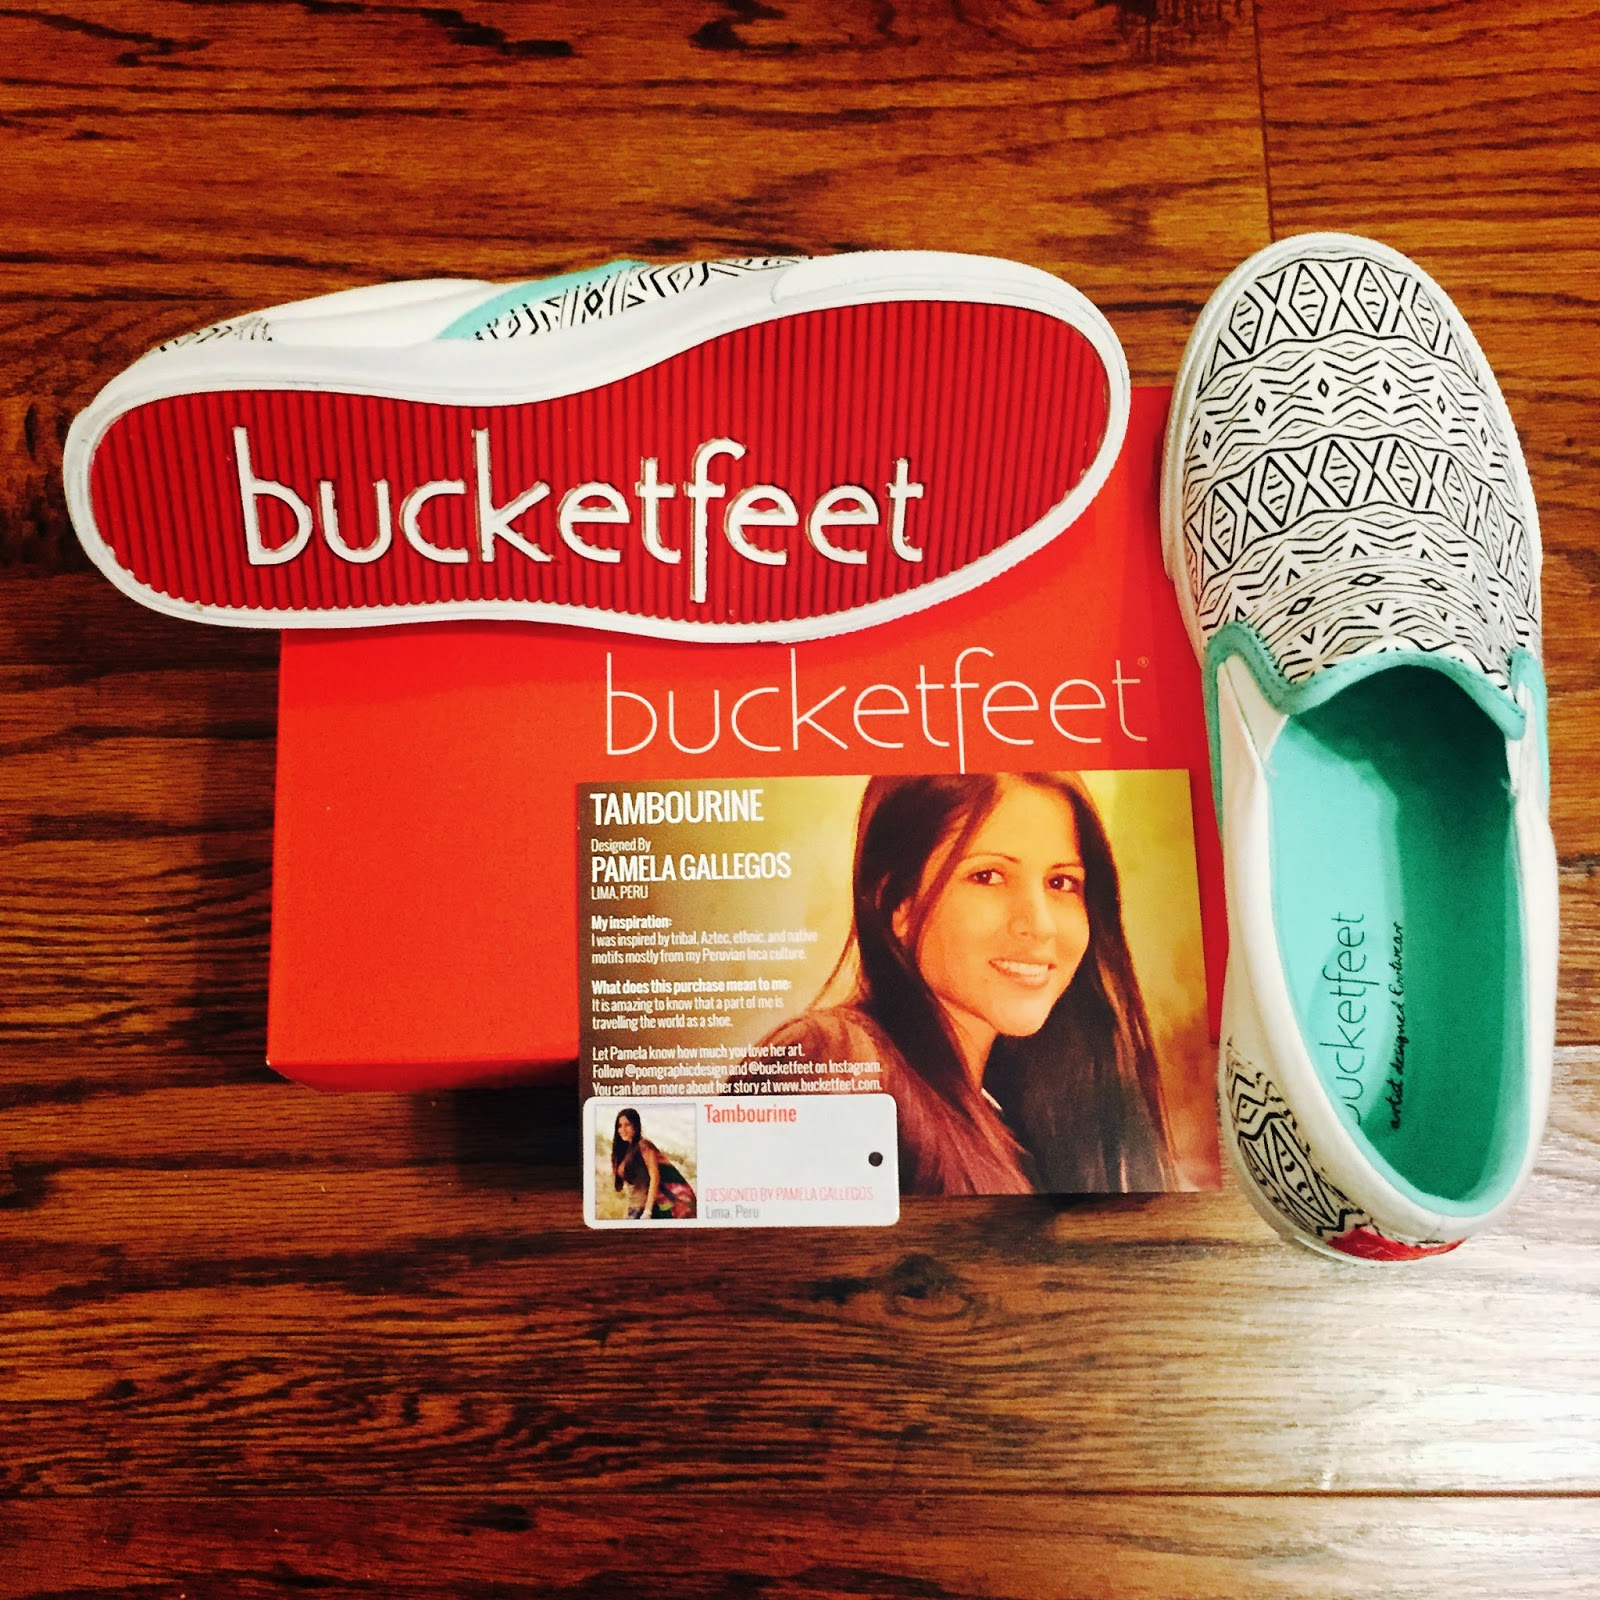 http://www1.bloomingdales.com/shop/product/bucketfeet-flat-slip-on-sneakers-tambourine-line-print?ID=1237458&CategoryID=17400